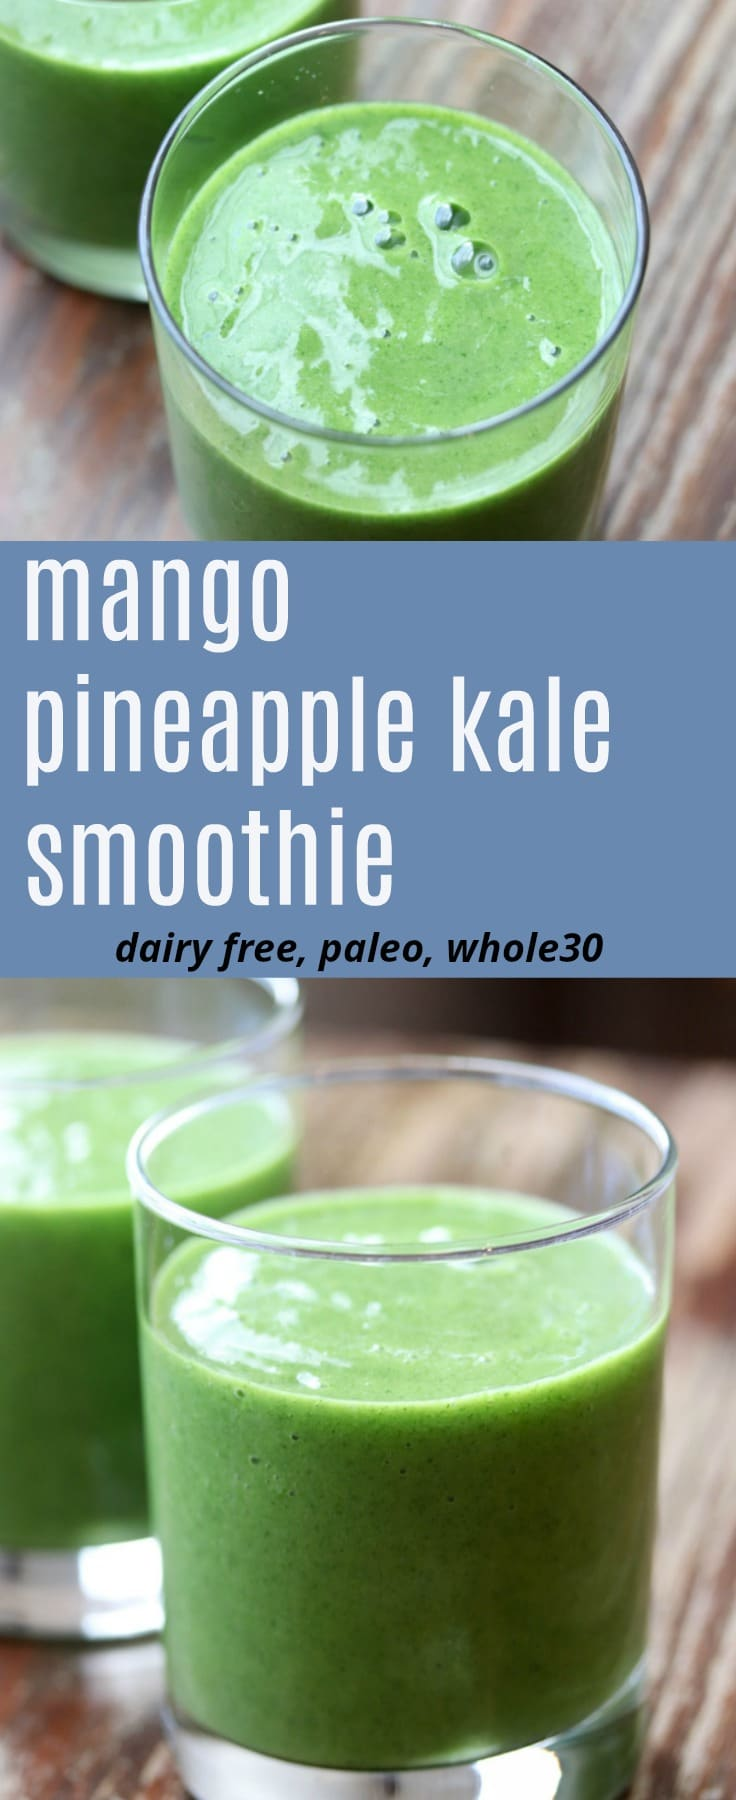 This healthy, nutrient dense paleo and Whole30 compliant mango pineapple kale smoothie tastes great even though there's a lot of something you may not like in it - kale! #kale #smoothie #greensmoothie #paleo #whole30 #dairyfree #mango #pineapple